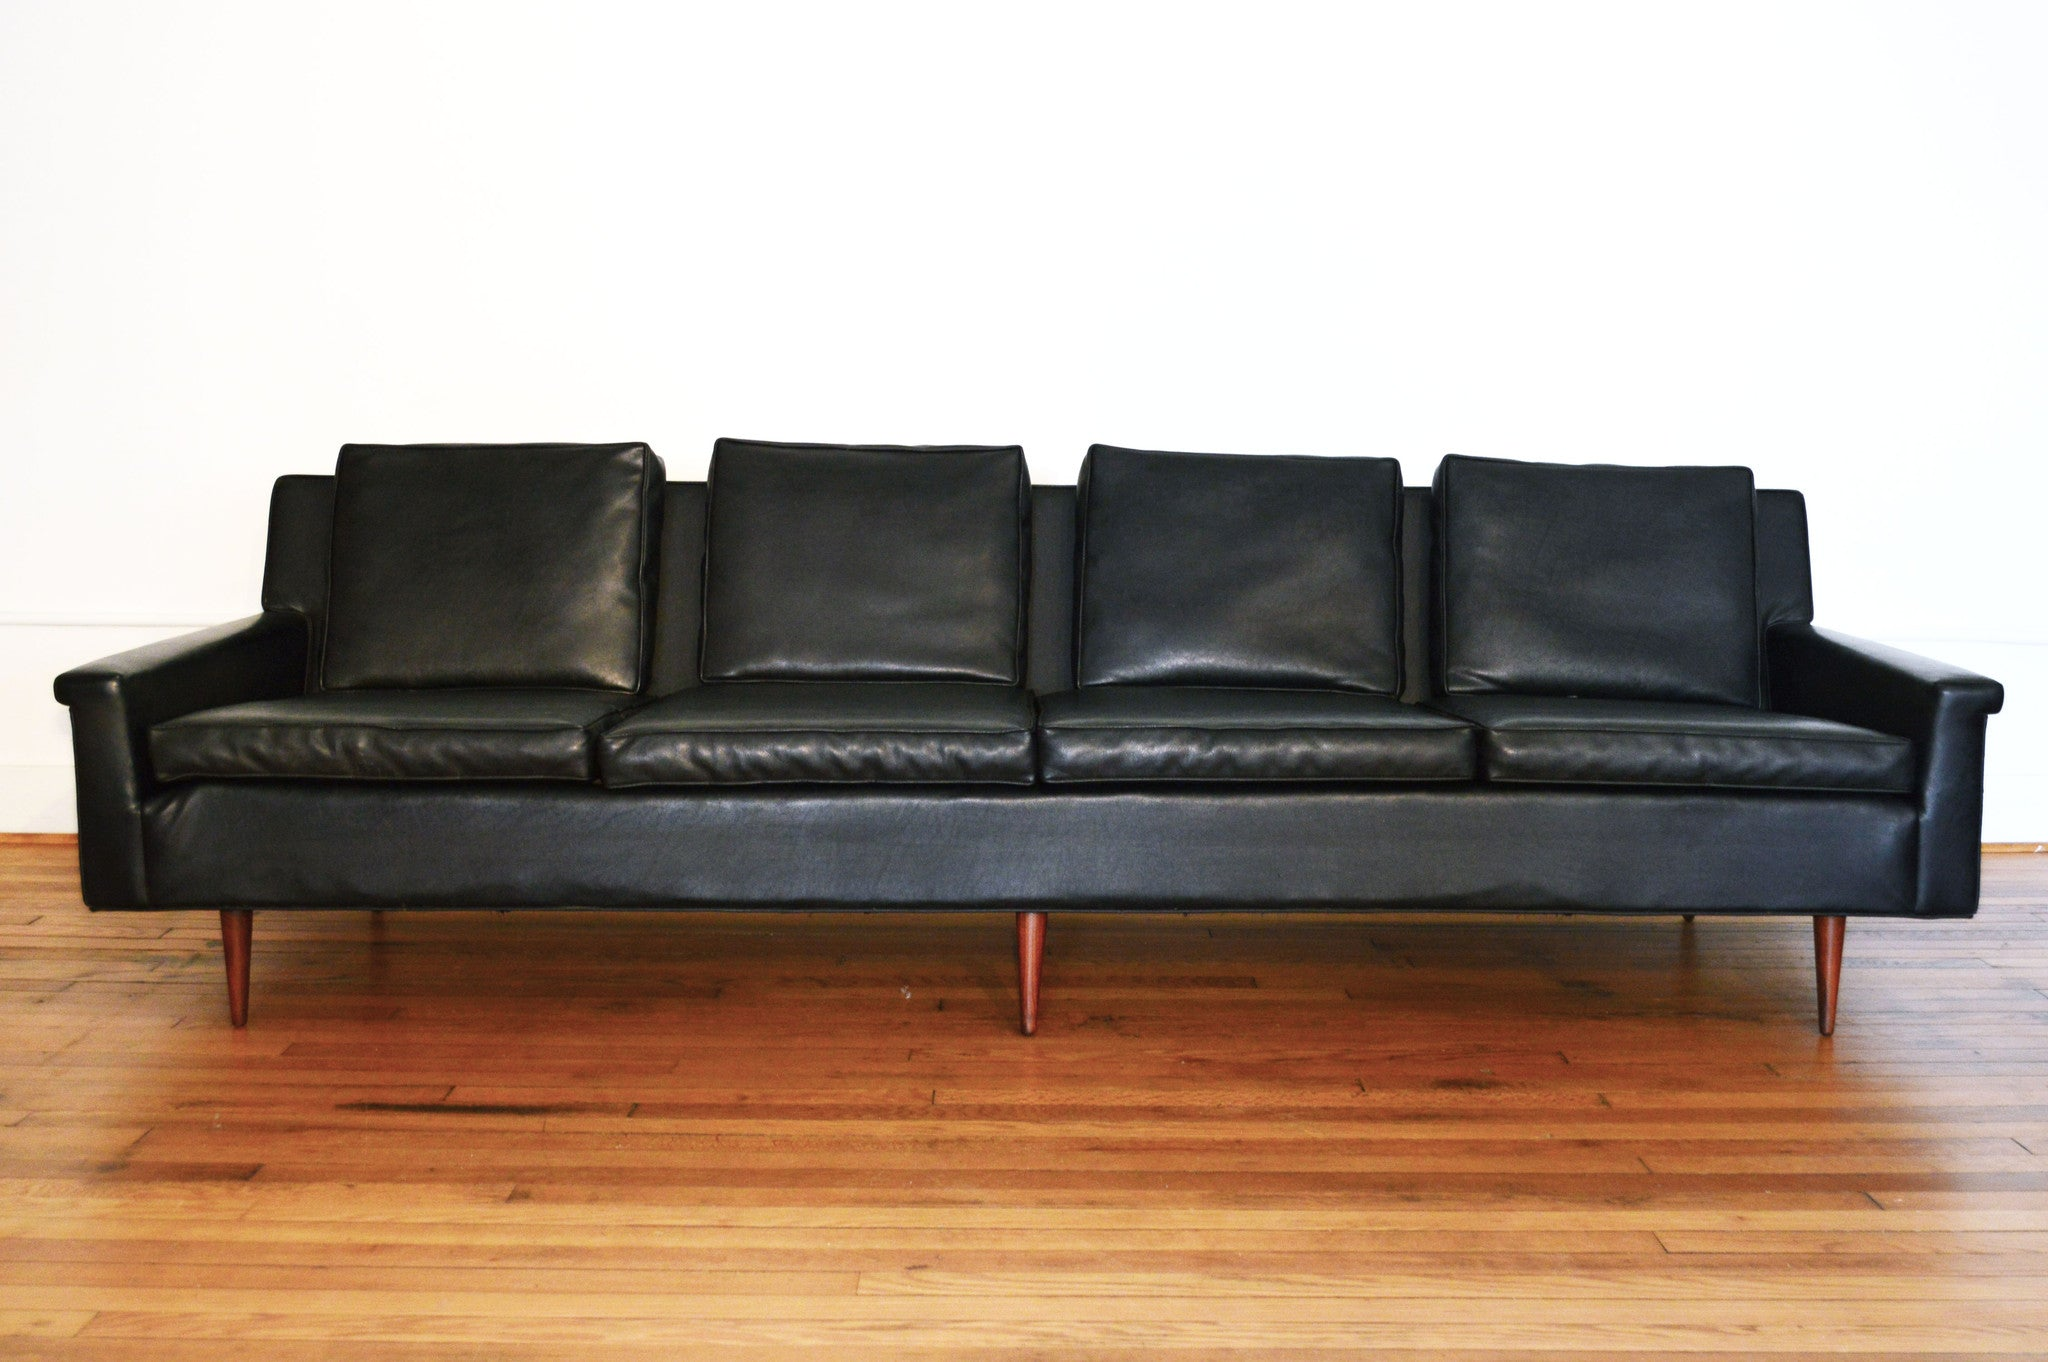 Milo Baughman for Thayer Coggin Black Danish Modern Sofa 1964